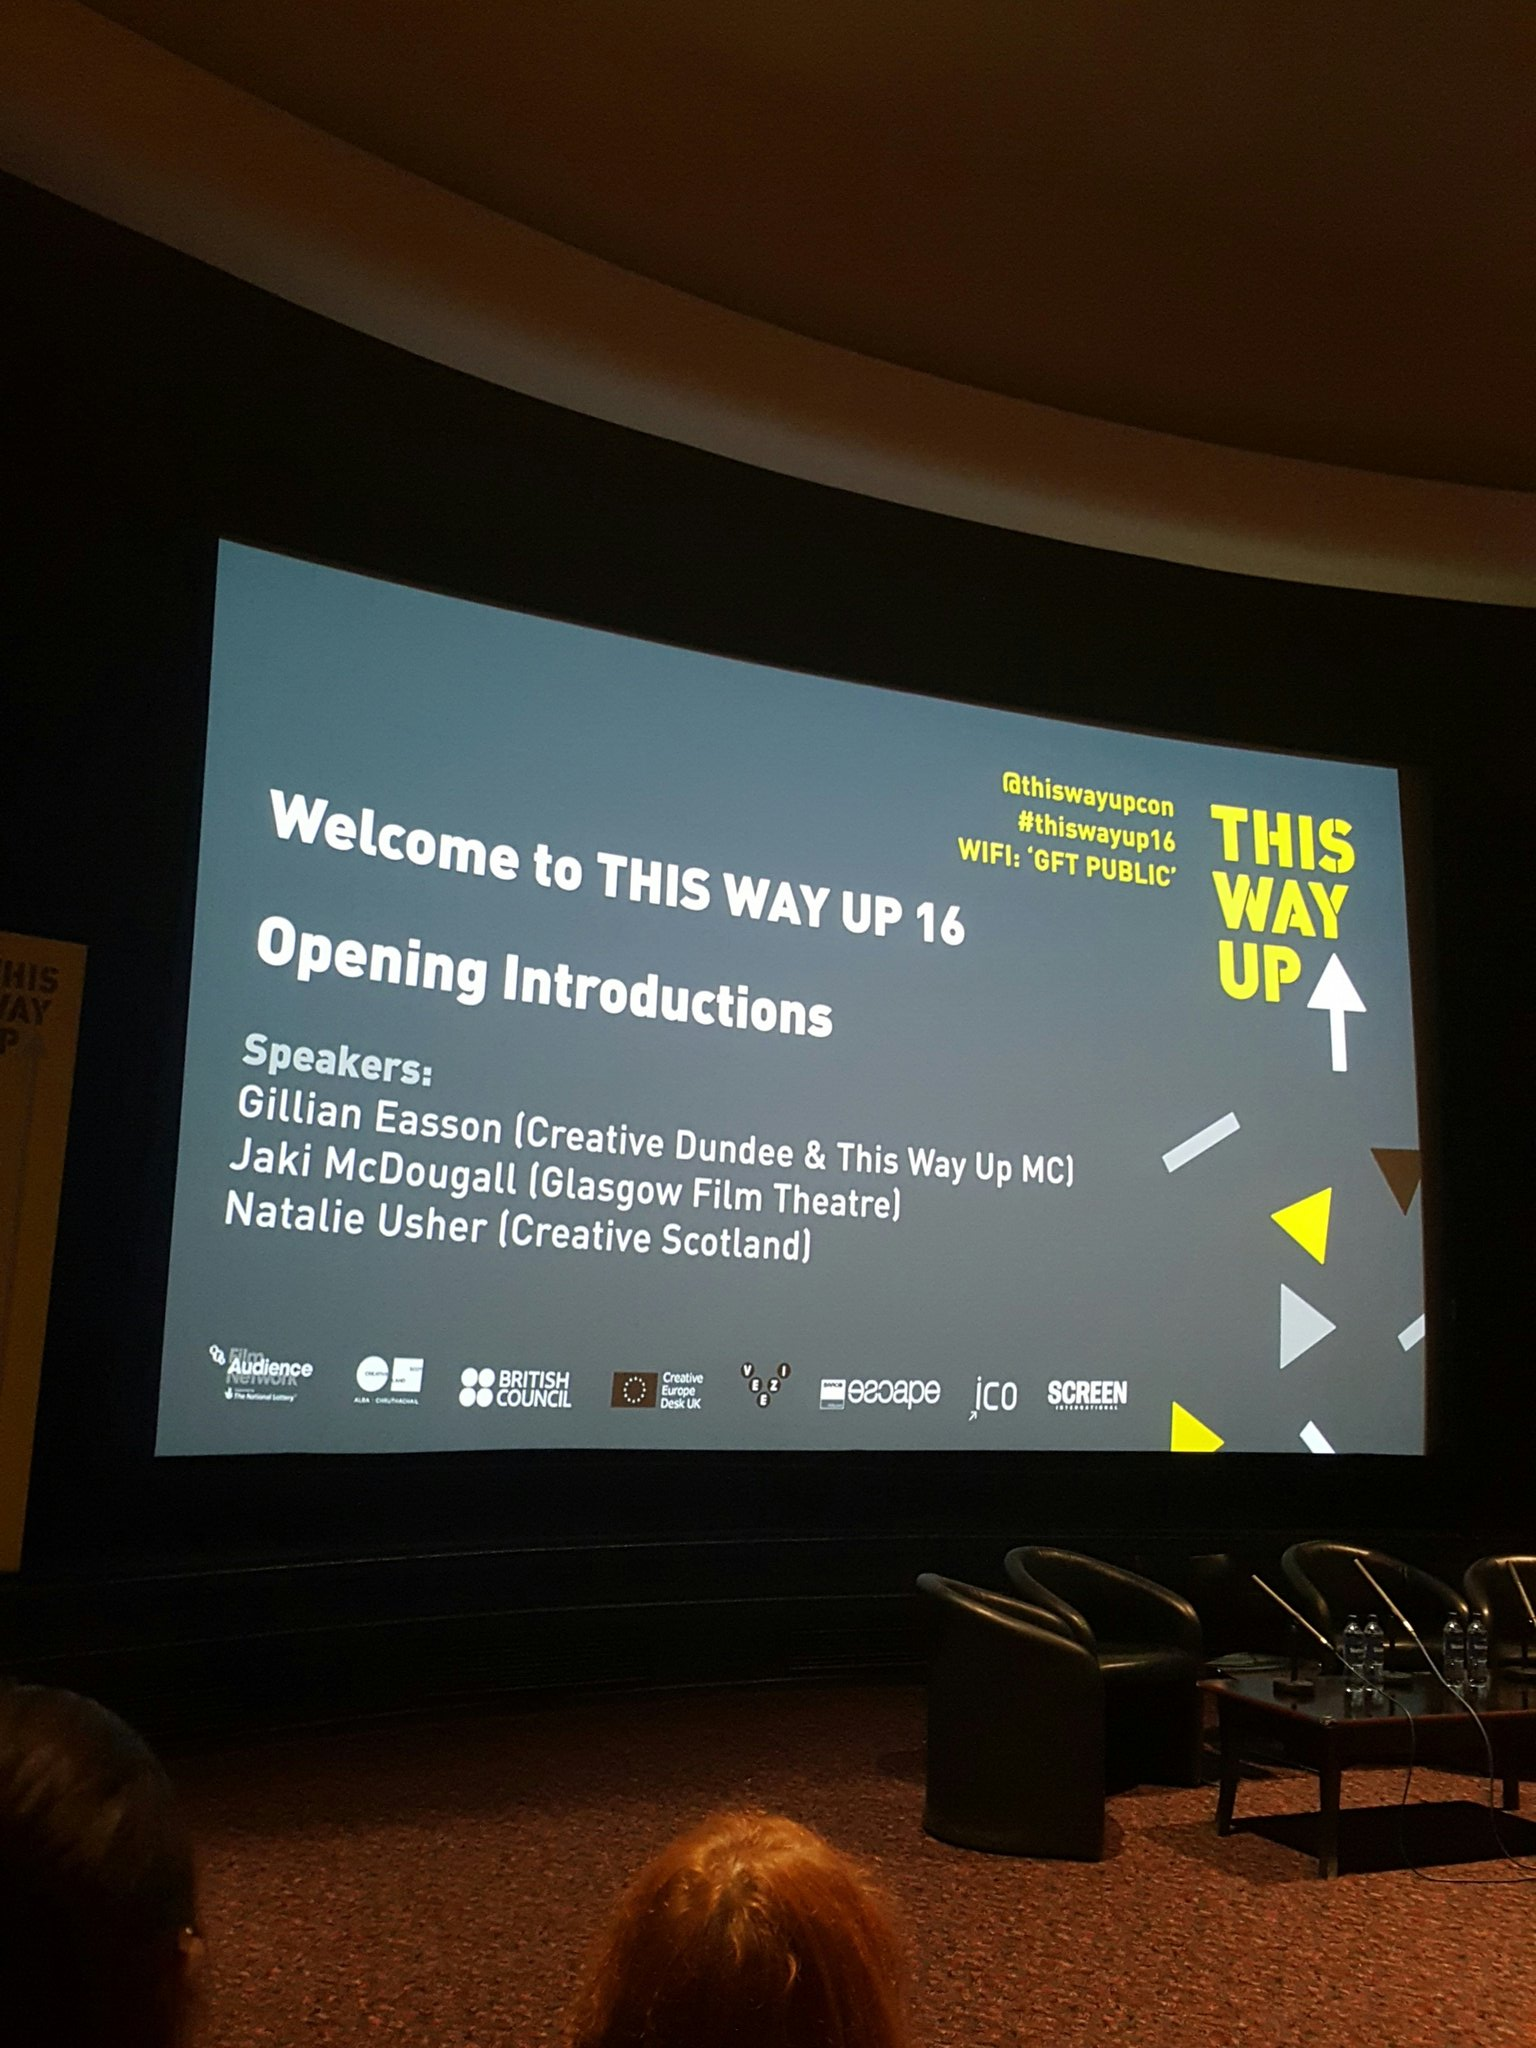 So we are off... This Way Up 2016. Two days of exploring the world of film exhibition and innovation #ThisWayUp16 https://t.co/lKgftqIFbs